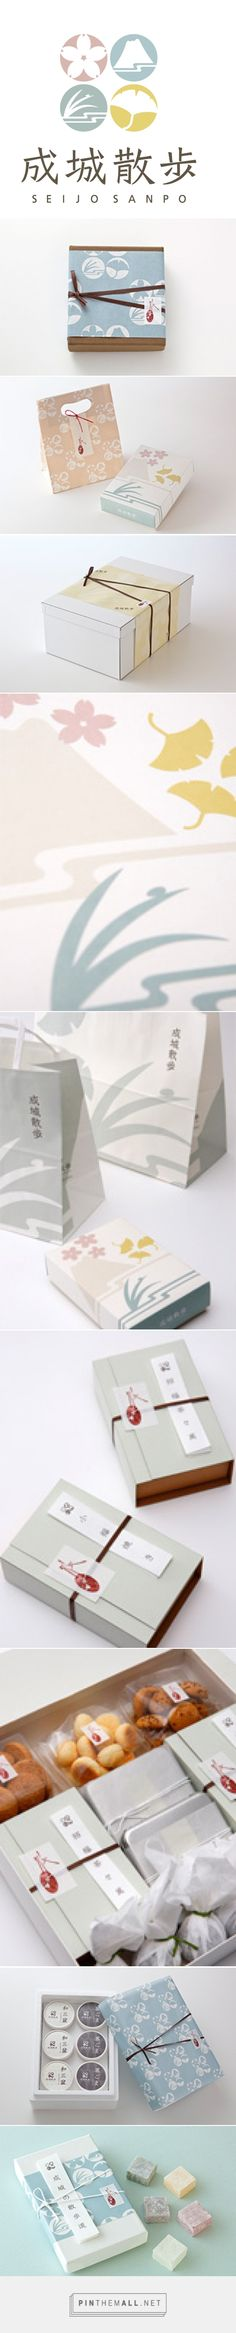 SEIJO SANPO | WORKS | AWATSUJI design curated by Packaging Diva PD. Yummy packaging.